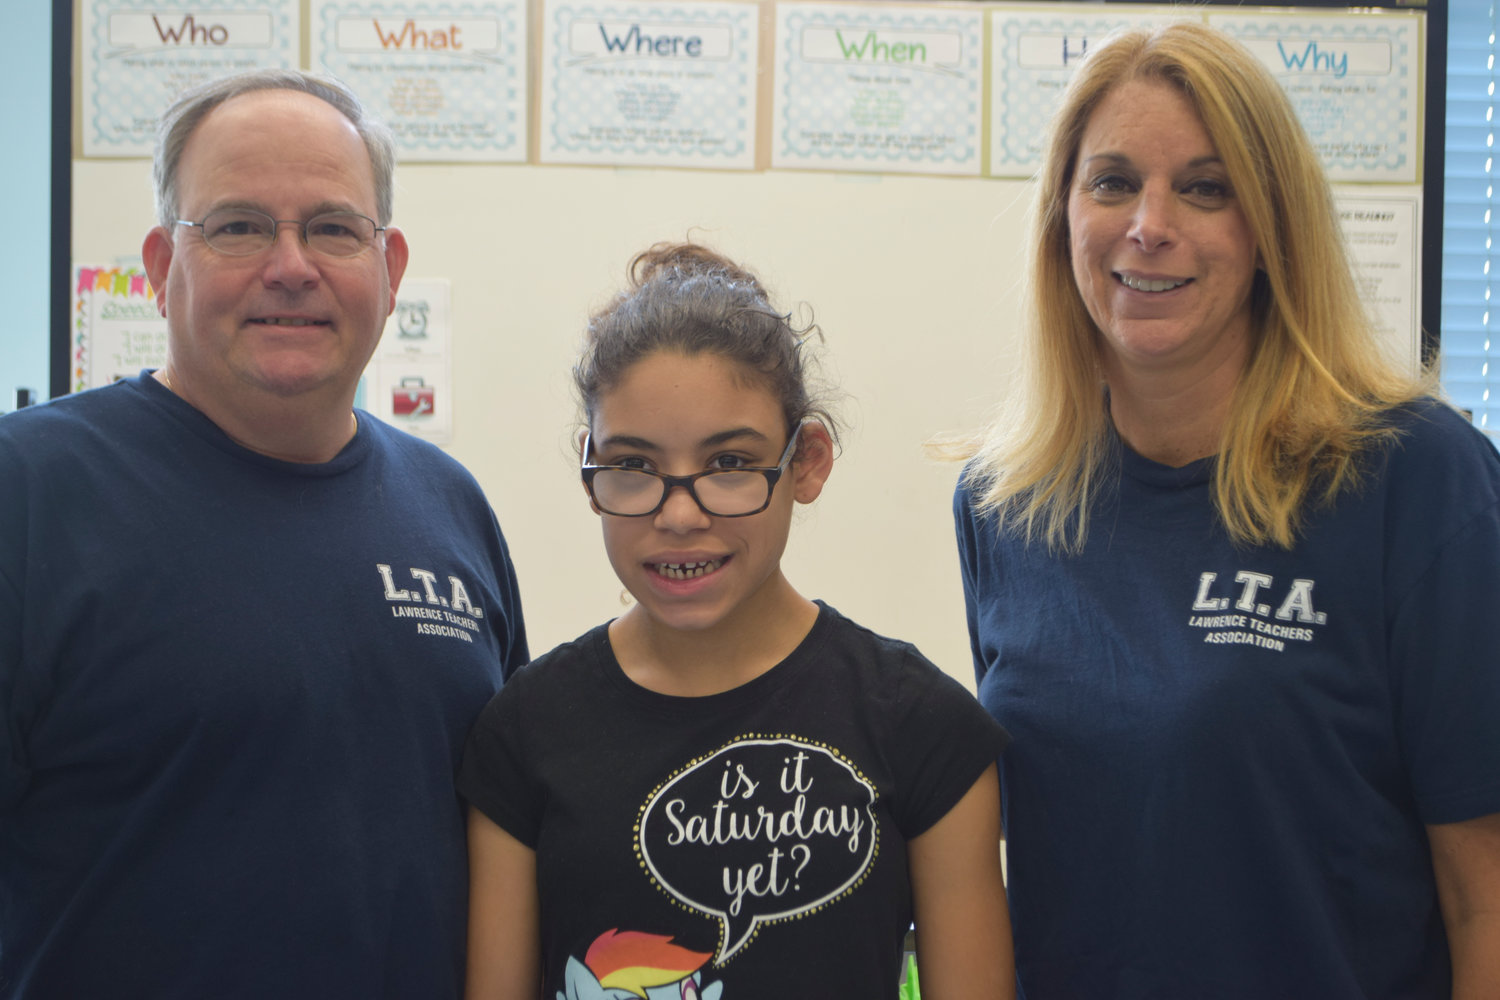 Seventh-grader Jade Suarez received cross-country coaching from Lawrence Middle School phys. ed. teachers Pat McQuillan, far left, and Cheri Donnelly-McQuillan.